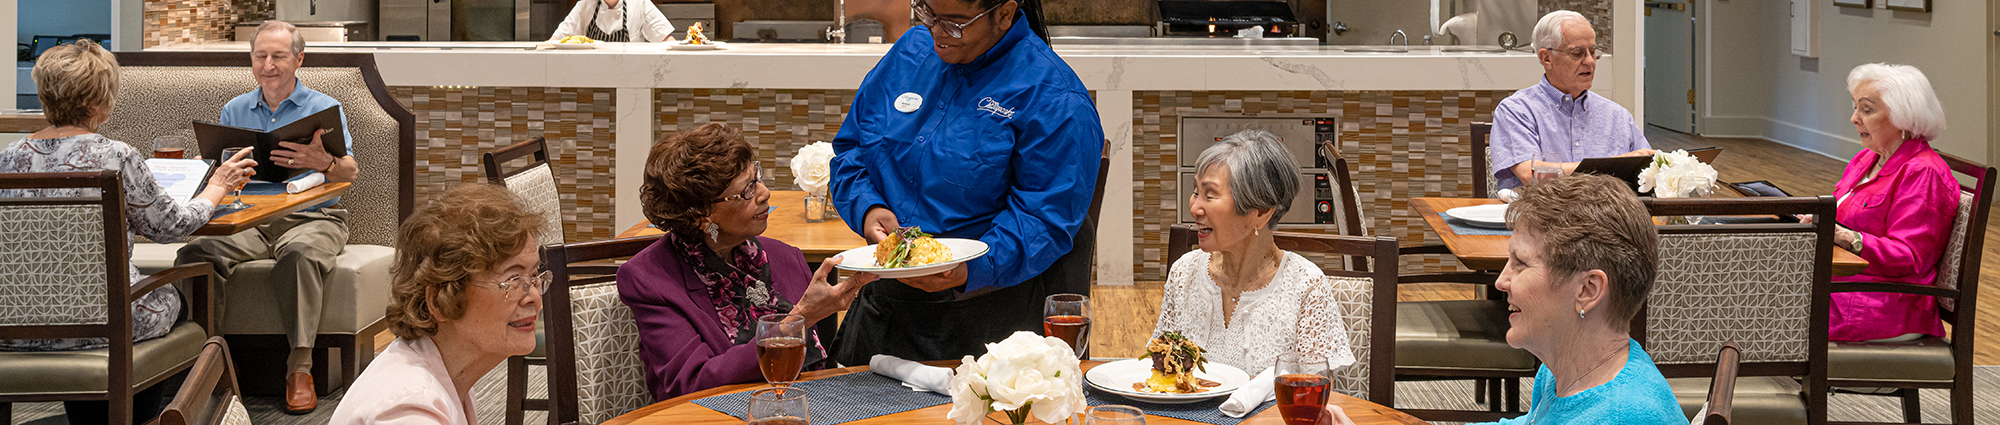 Senior residents at The Chesapeake eating in cafe area